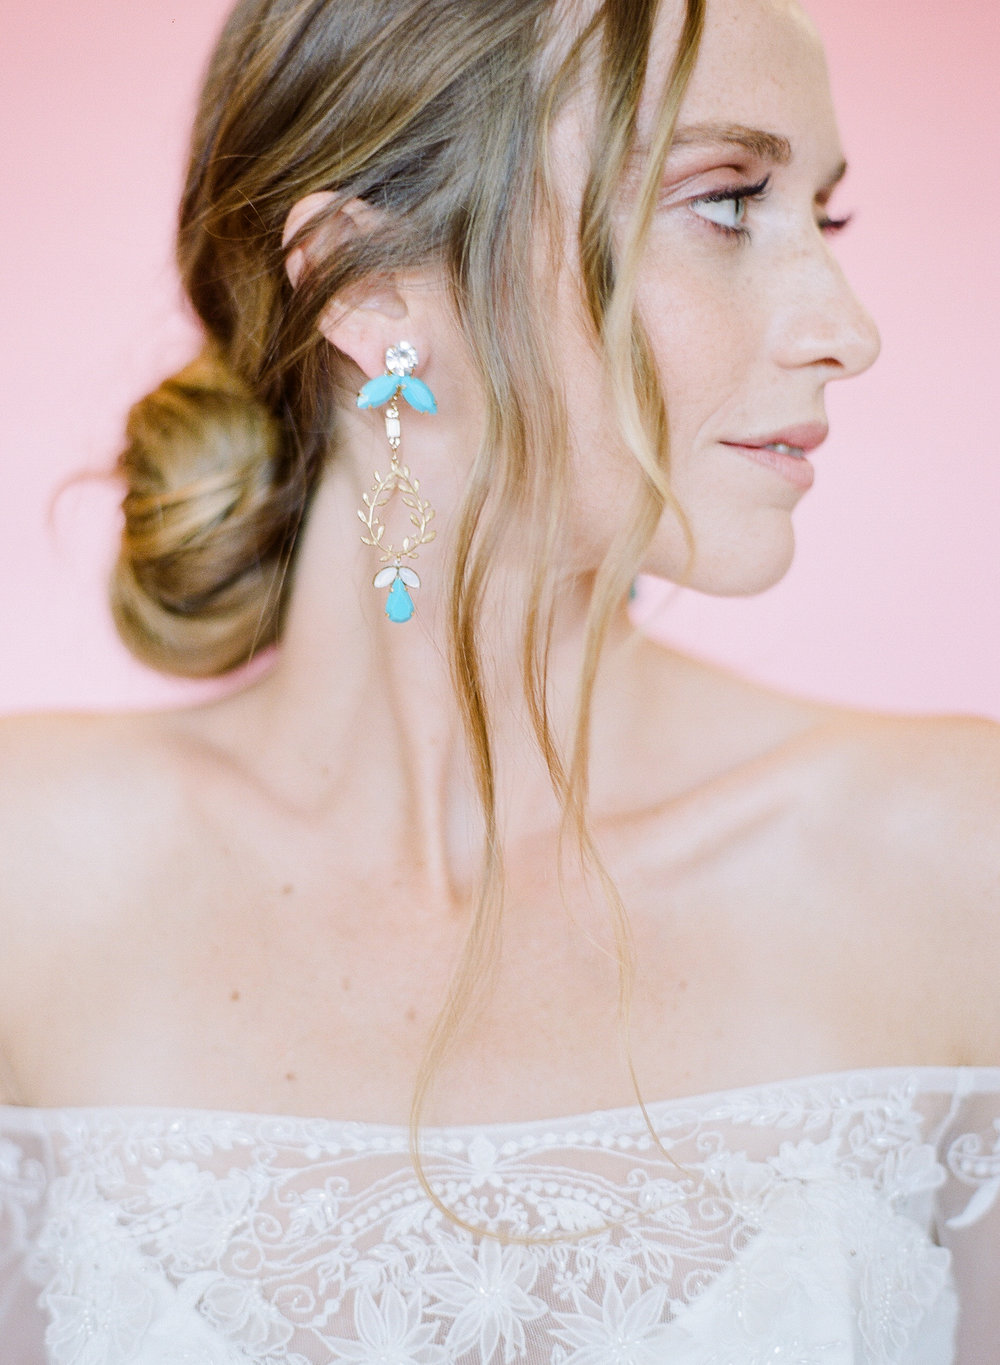 Hushed Commotion 2018, Rebecca Yale, turquoise boho glam wedding earrings side 2.jpg